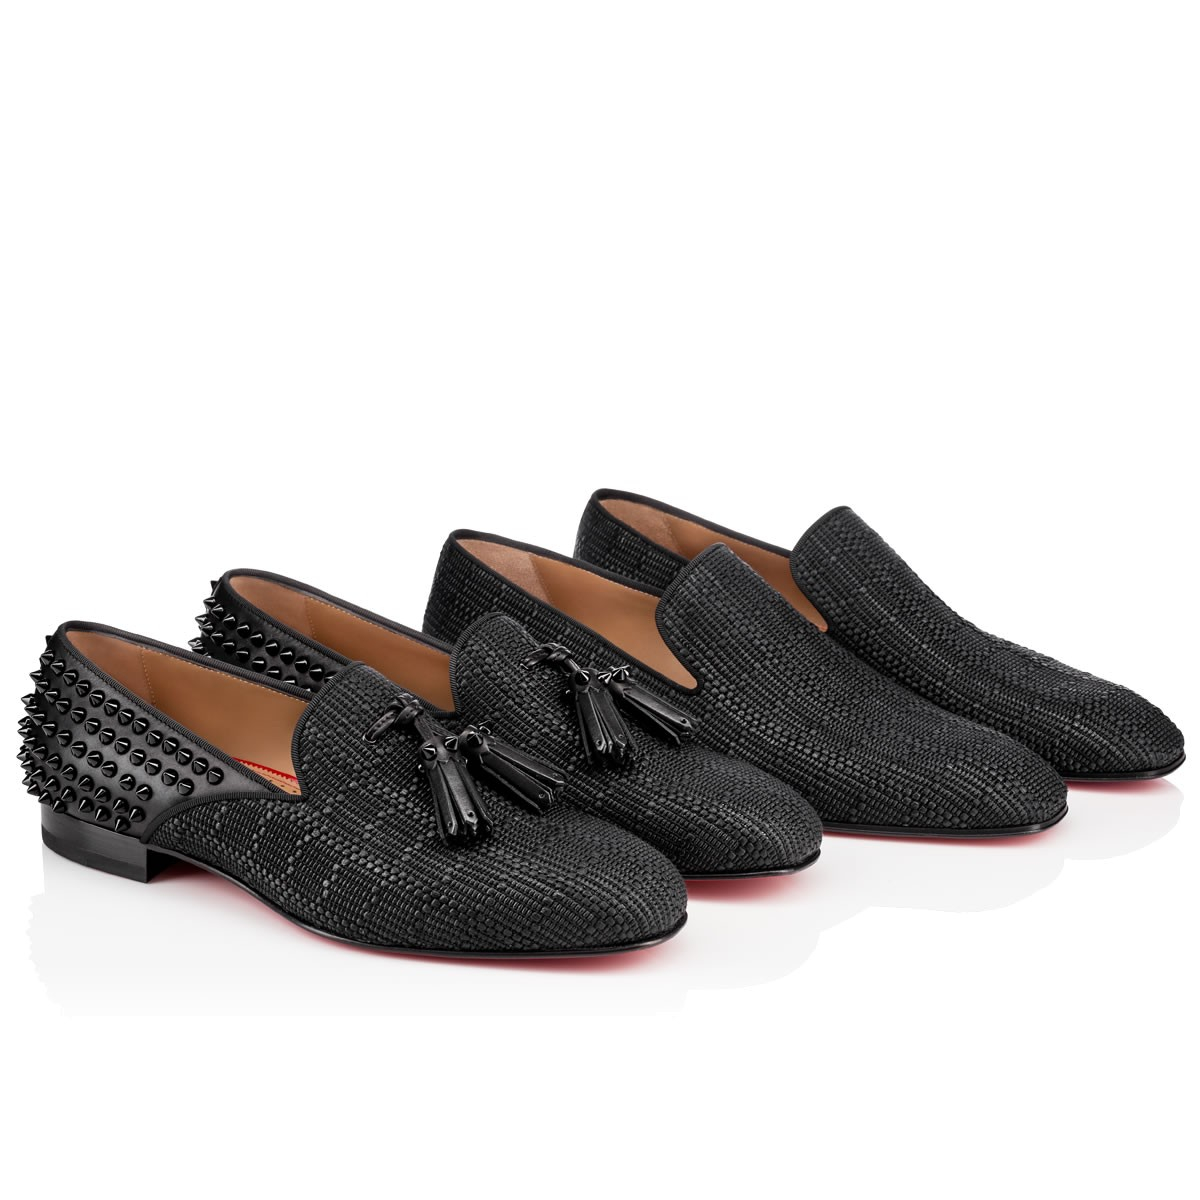 80ee799d2a3 ... reduced lyst christian louboutin dandelion flat in black for men f7a5b  37565 ...